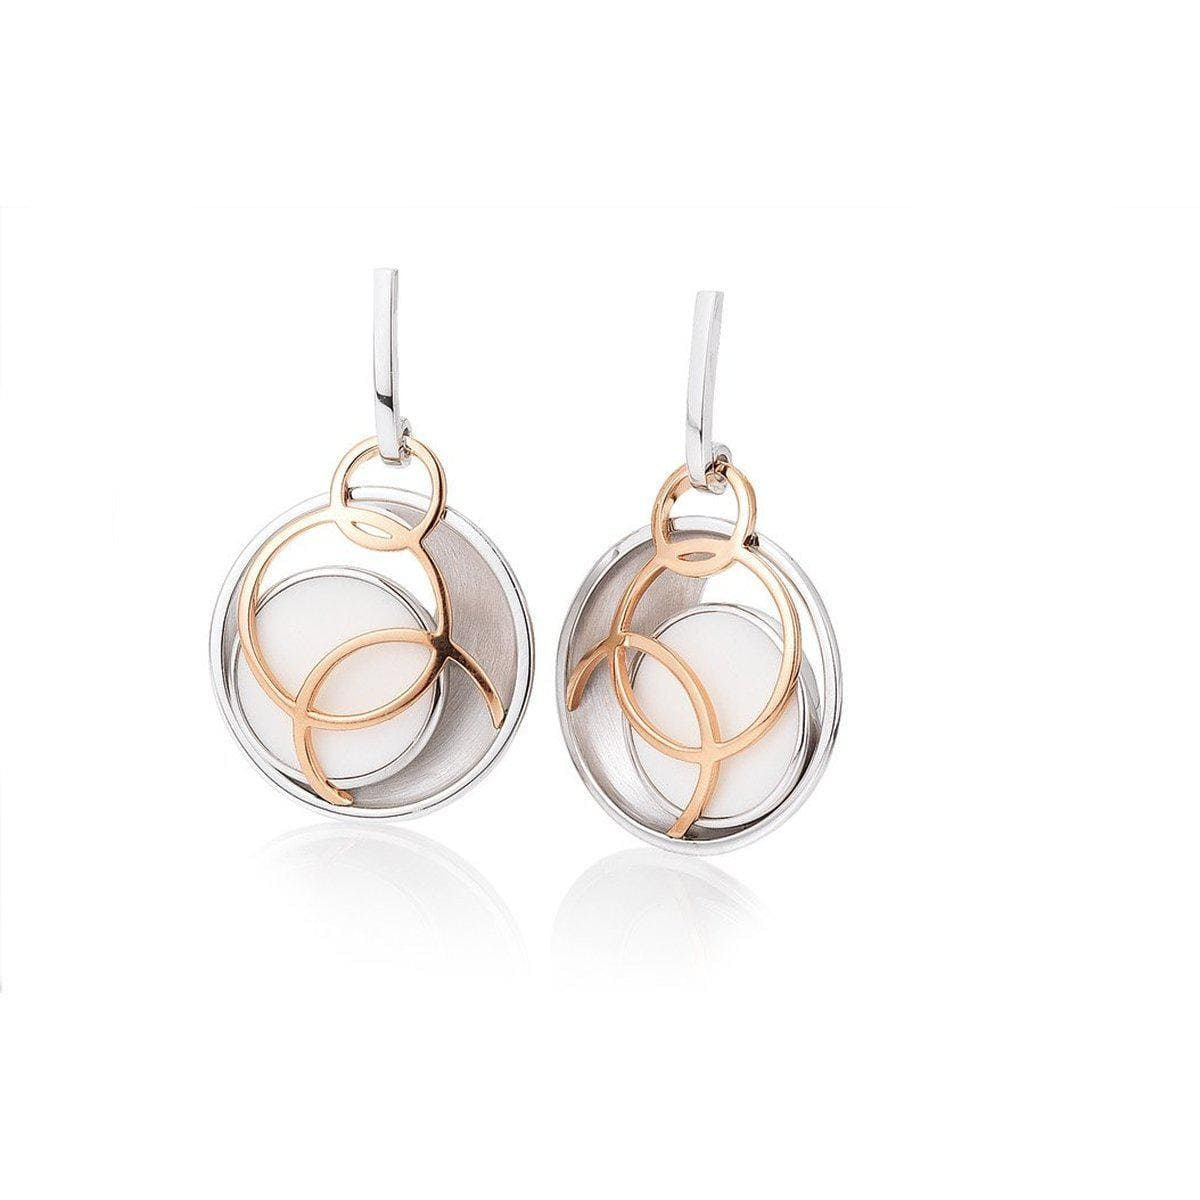 Rose Gold & Rhodium Plated Sterling Silver Earrings - 12/02009-Breuning-Renee Taylor Gallery